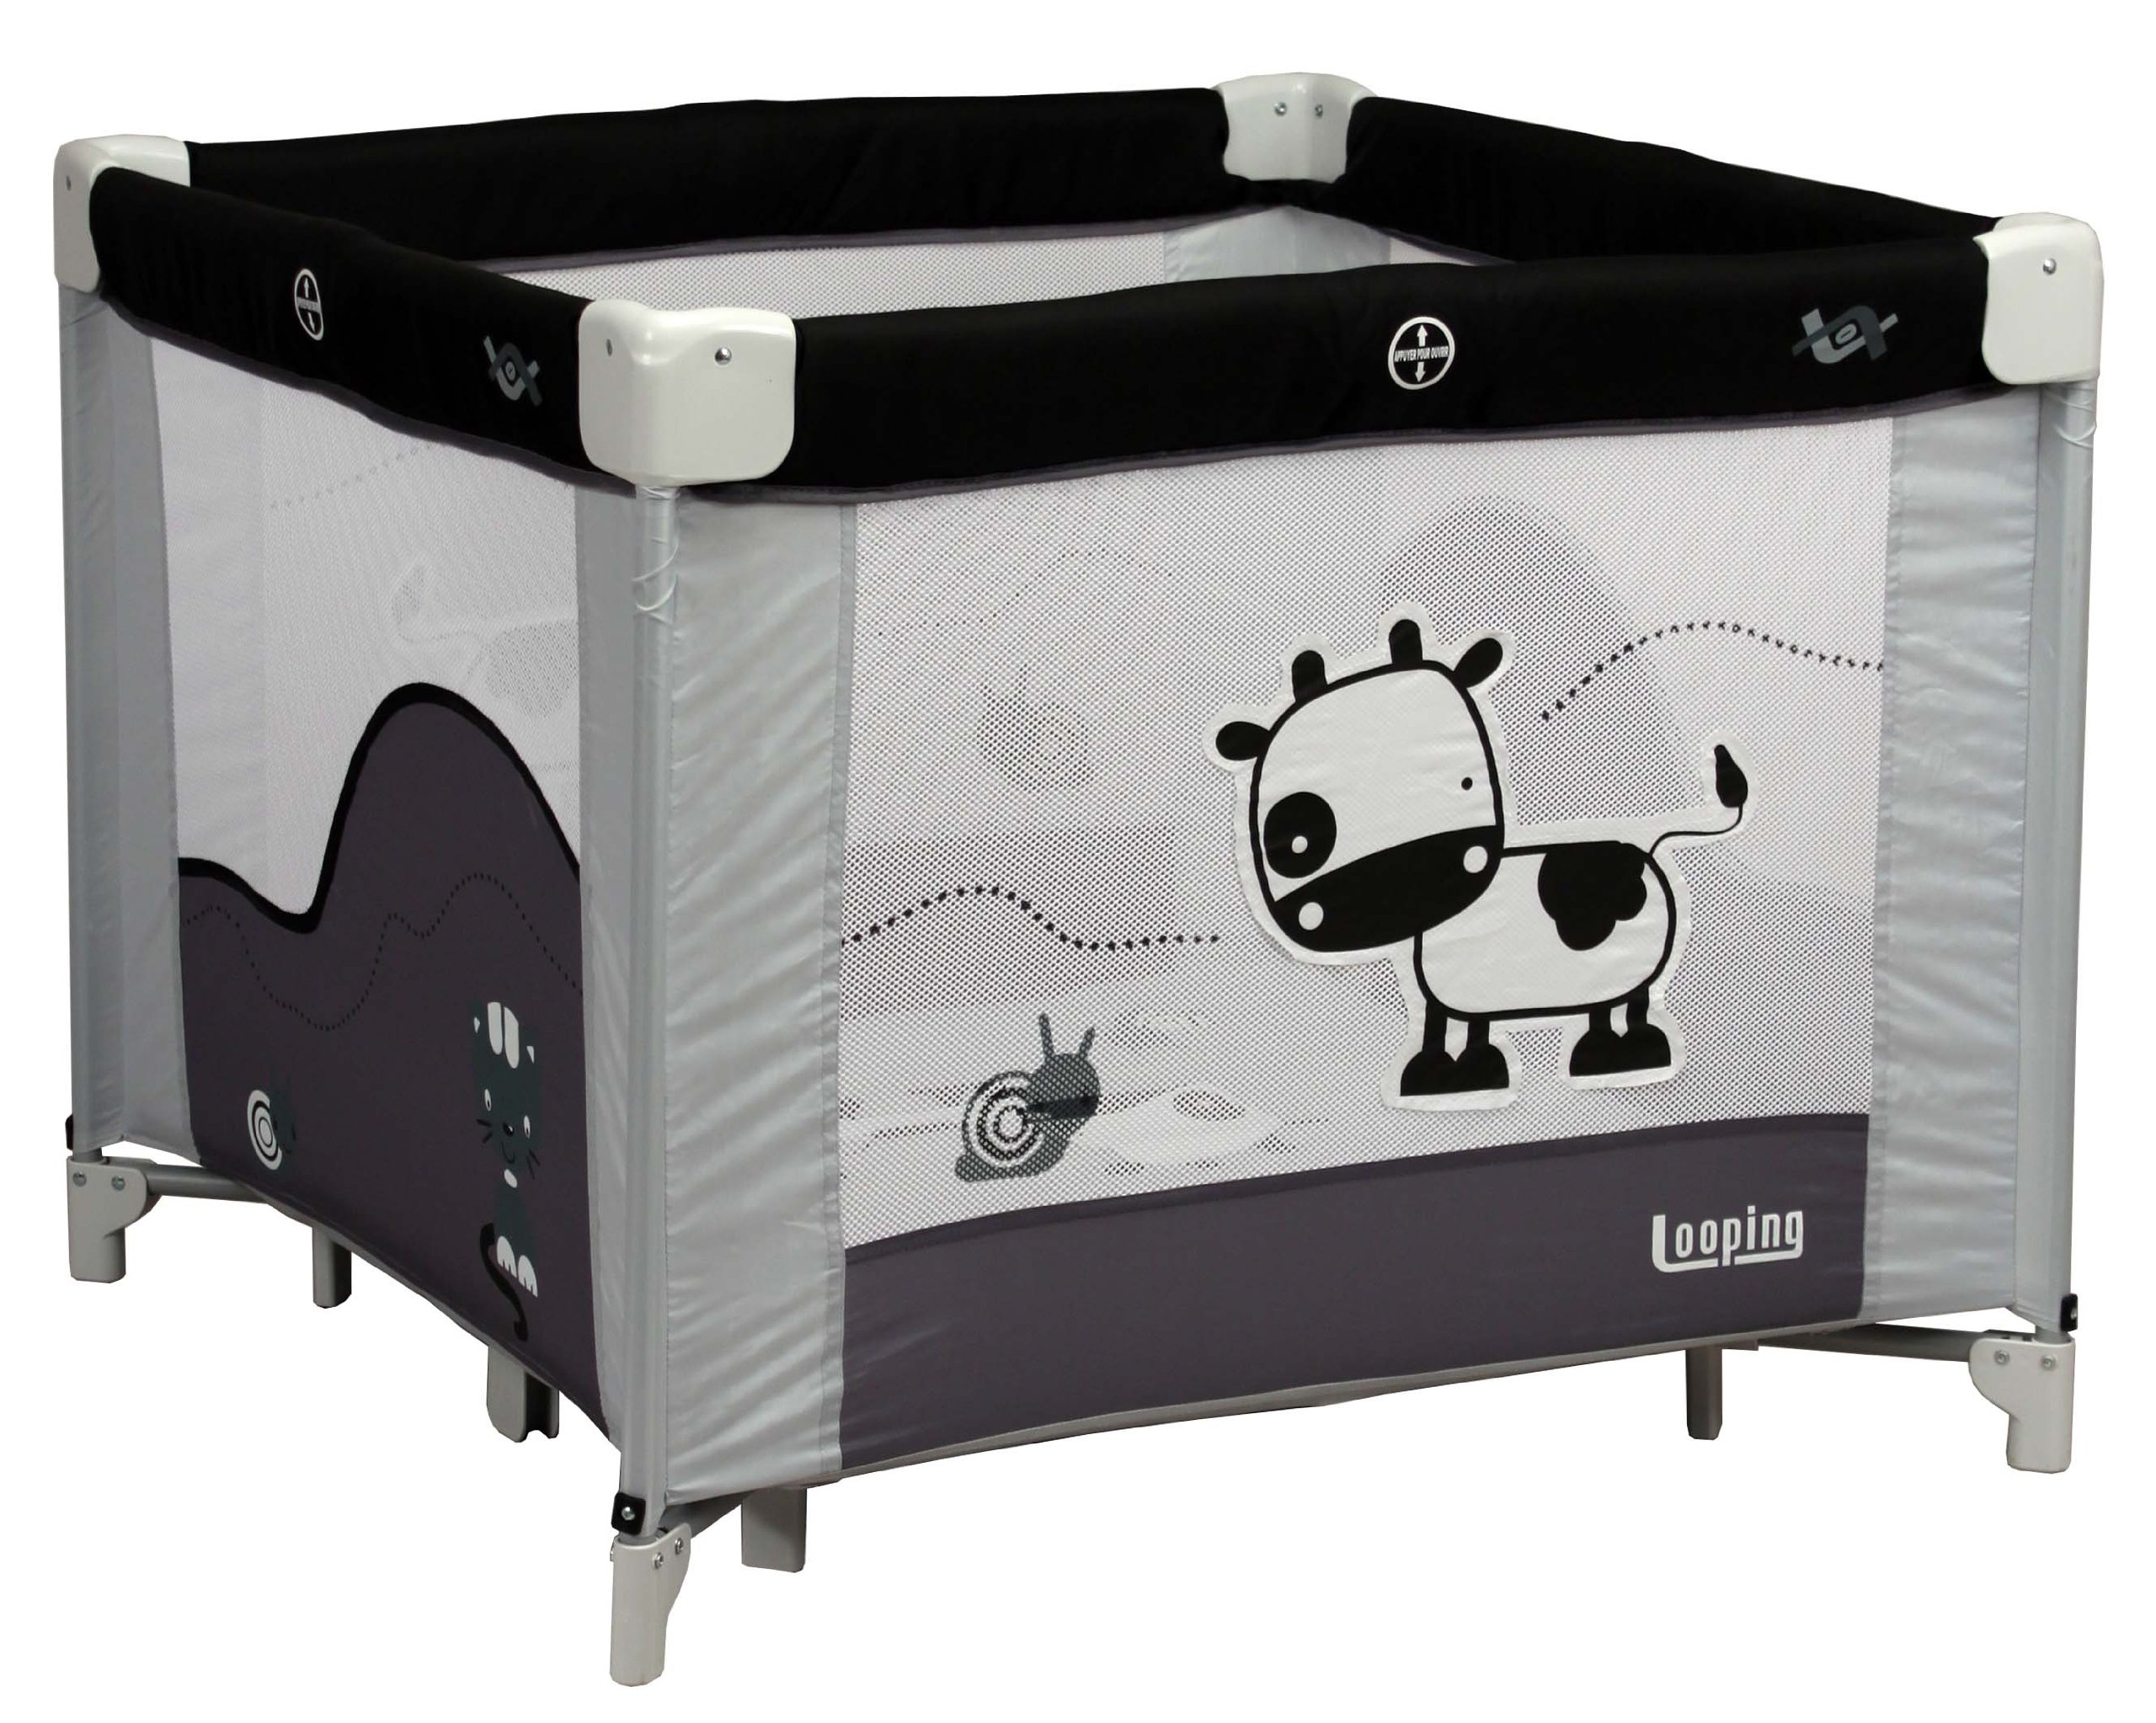 Looping Parc Pliant Black Home product image